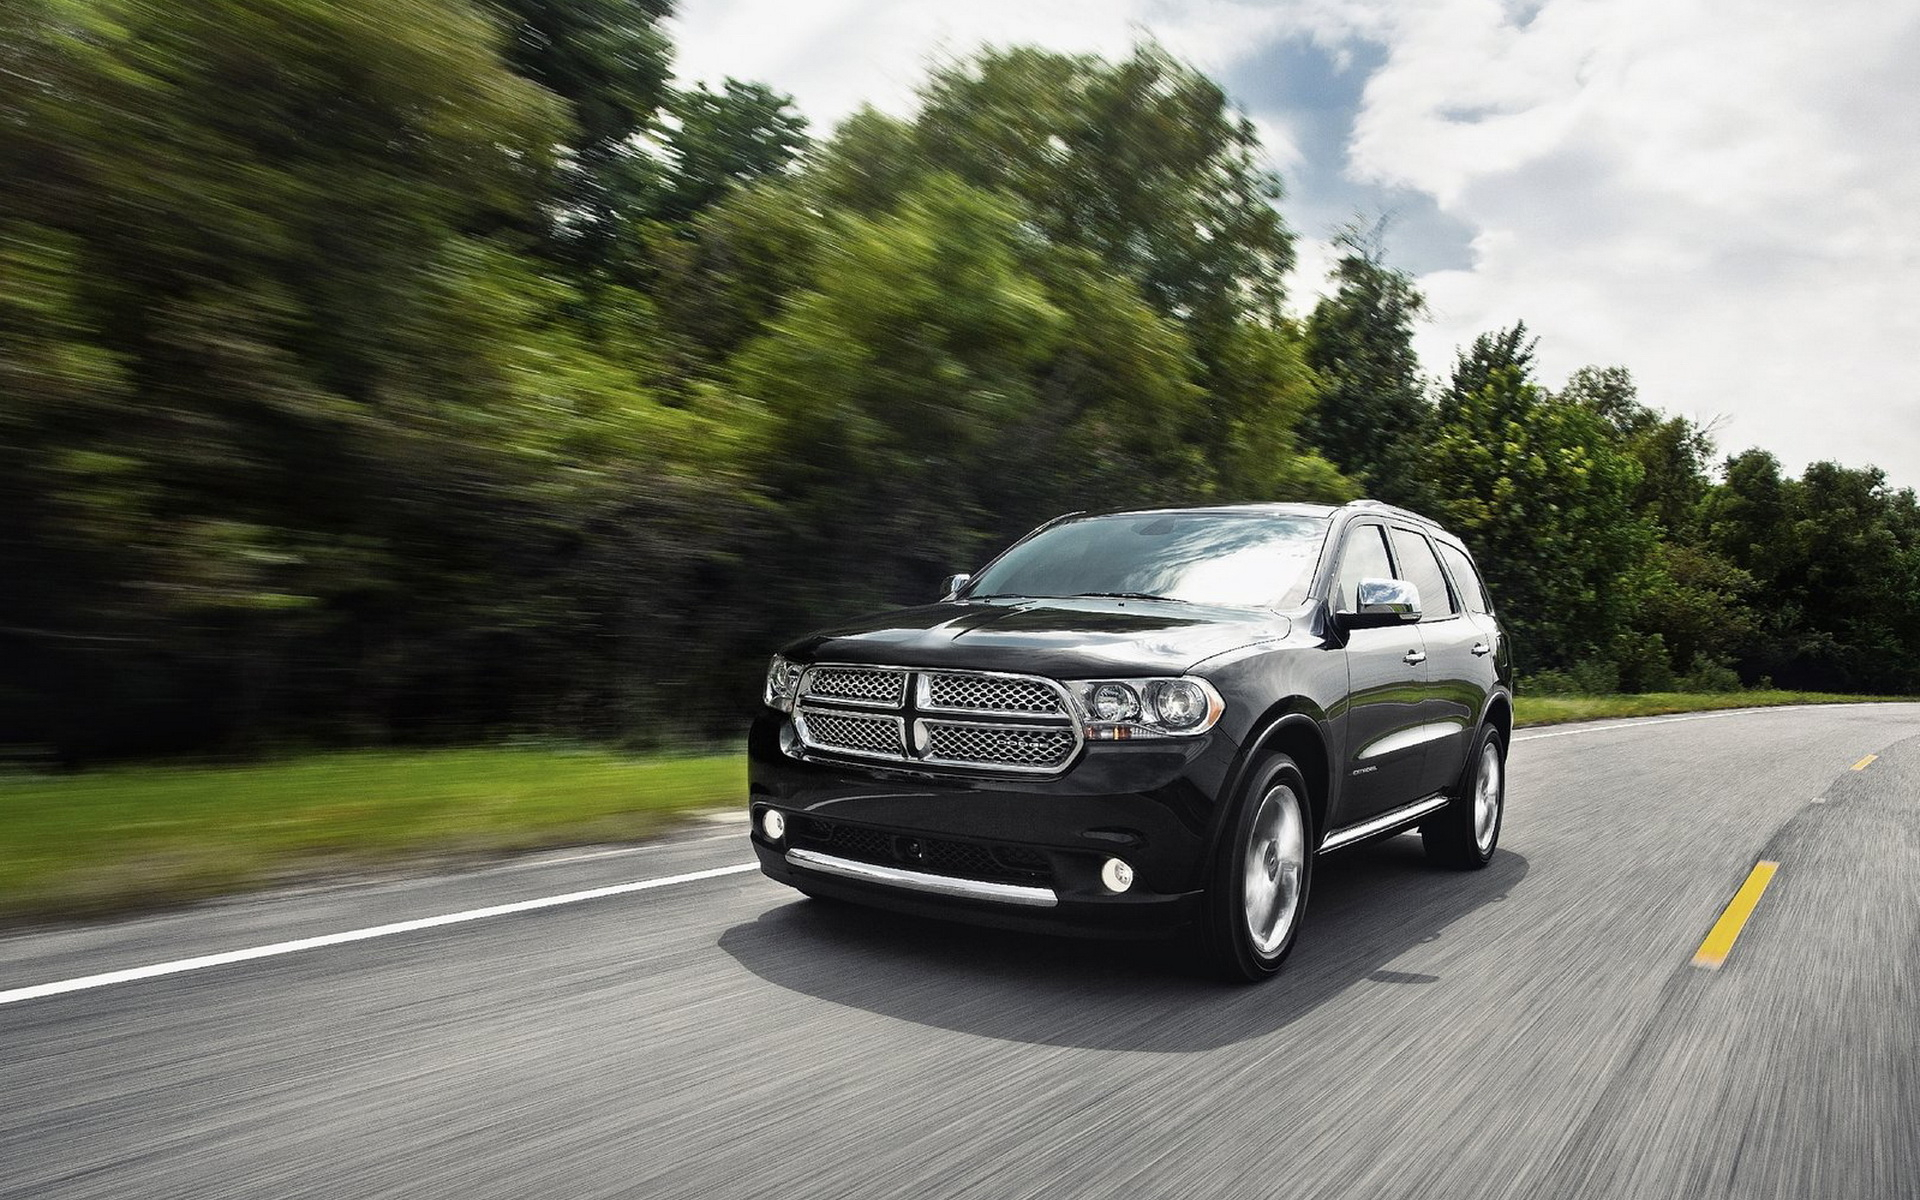 dodge durango wallpaper - photo #12